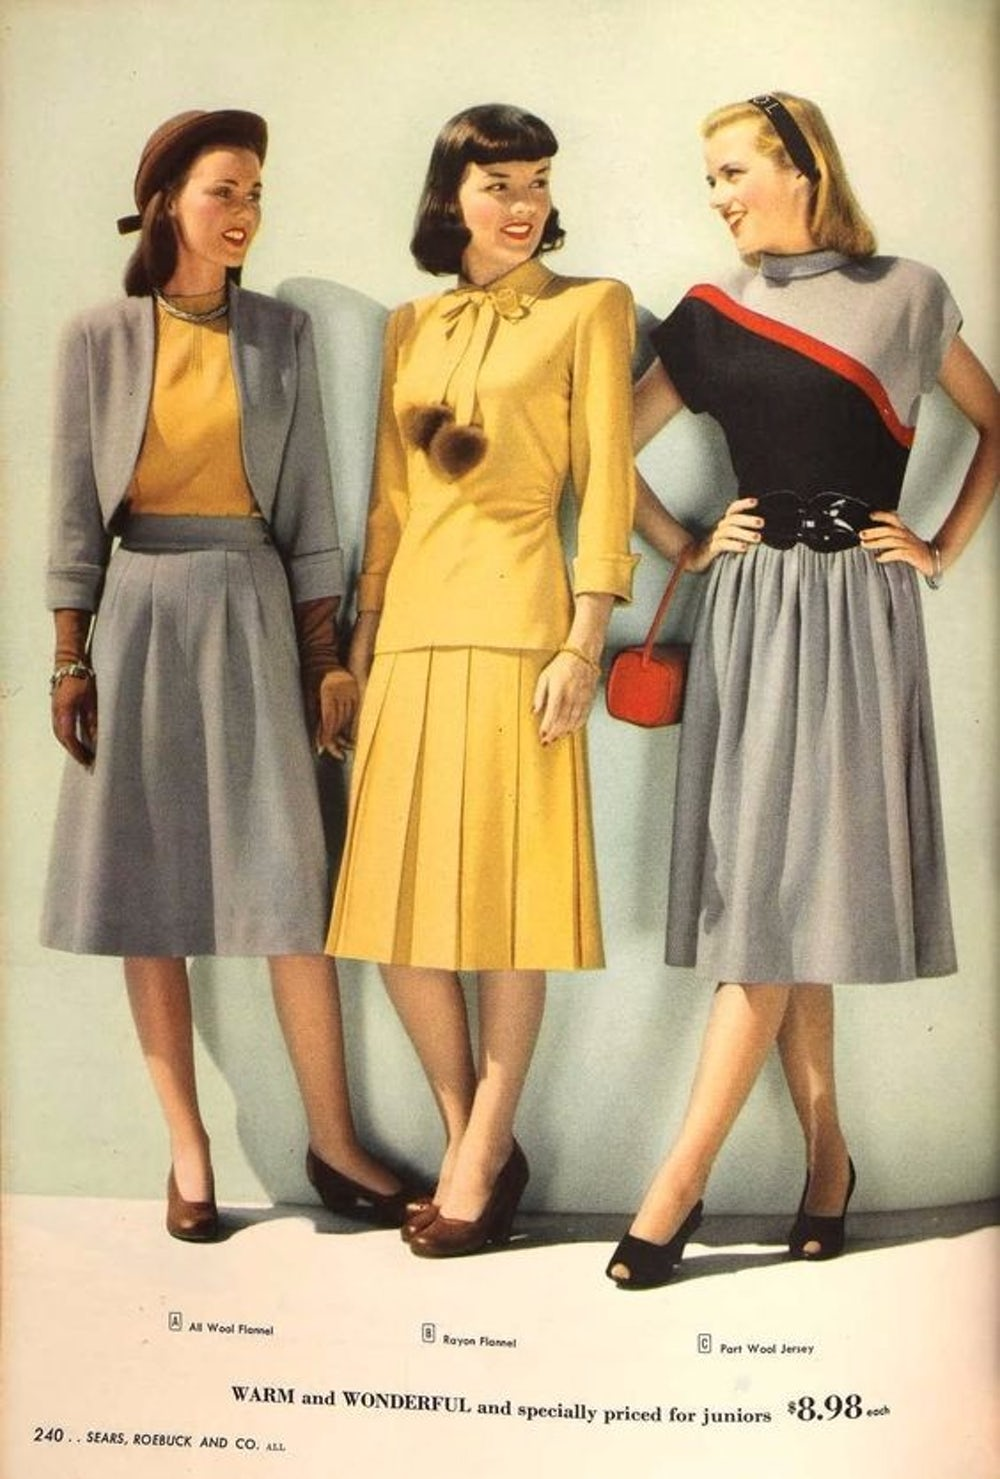 Pom-pom tassels in a 1940s Sears catalog.